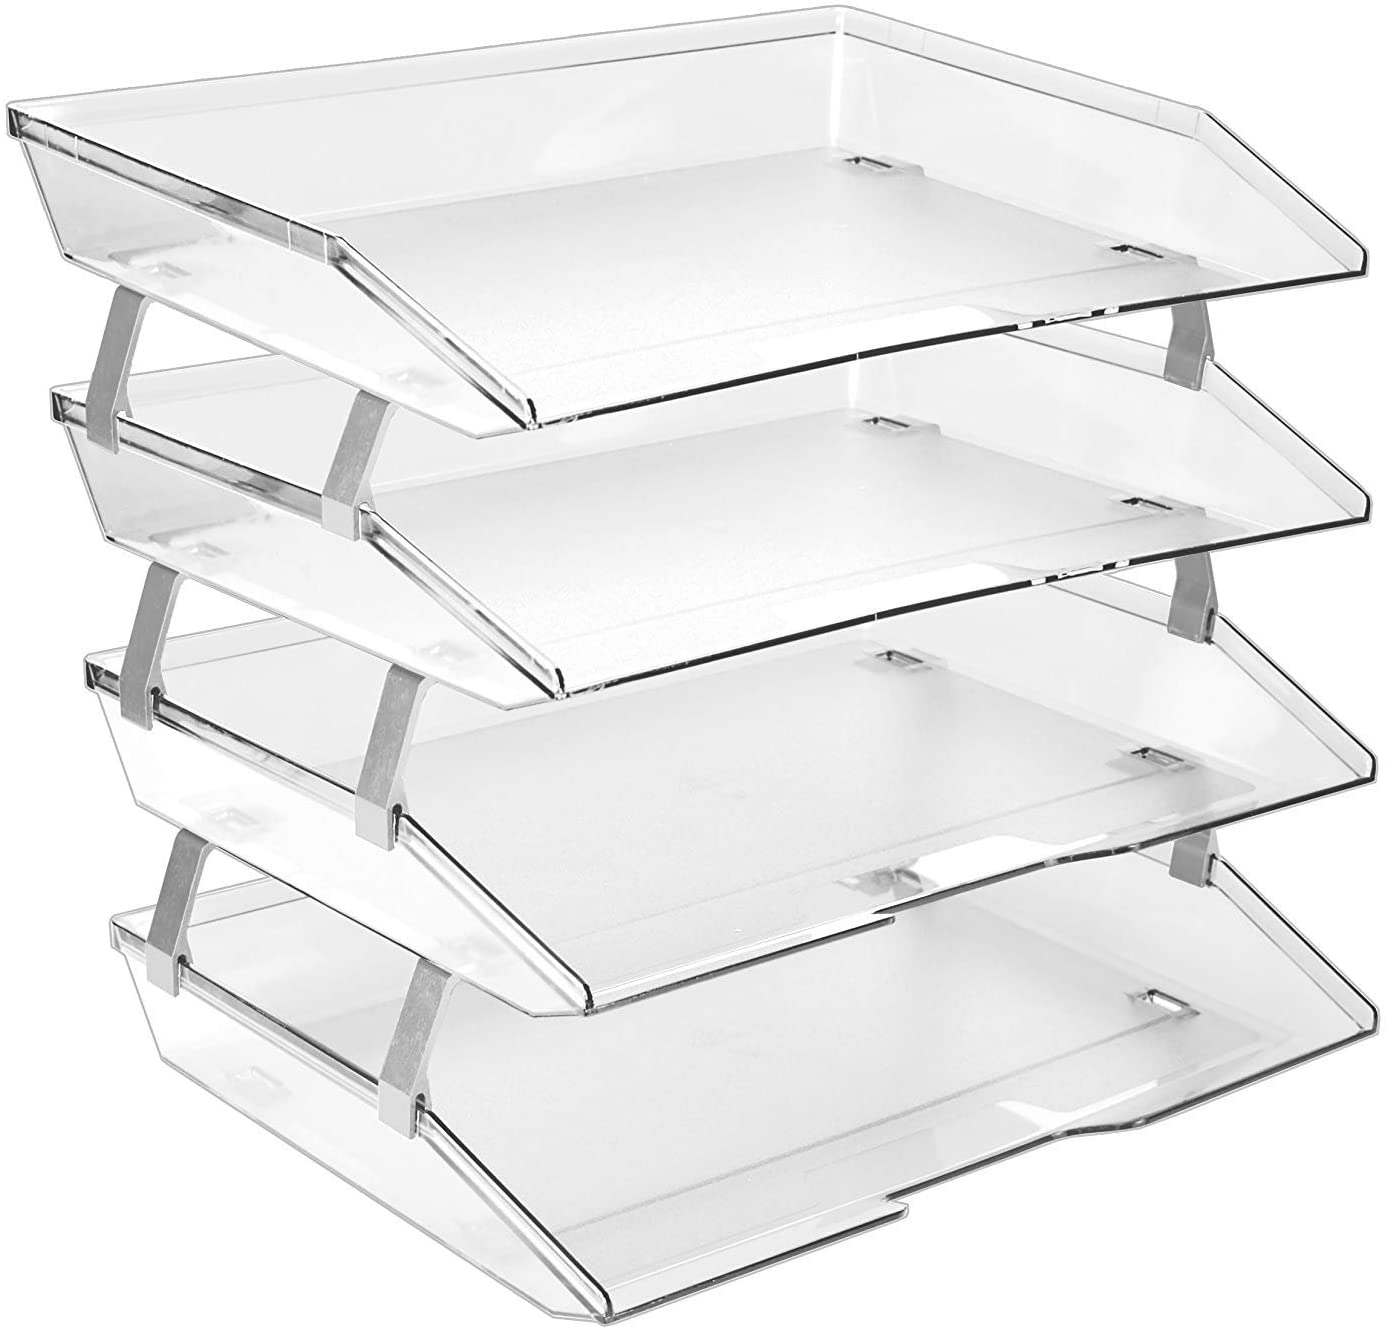 Acrimet Facility Spring new work one after another 4 Tier Letter Tray Fi Side Load Super beauty product restock quality top Plastic Desktop